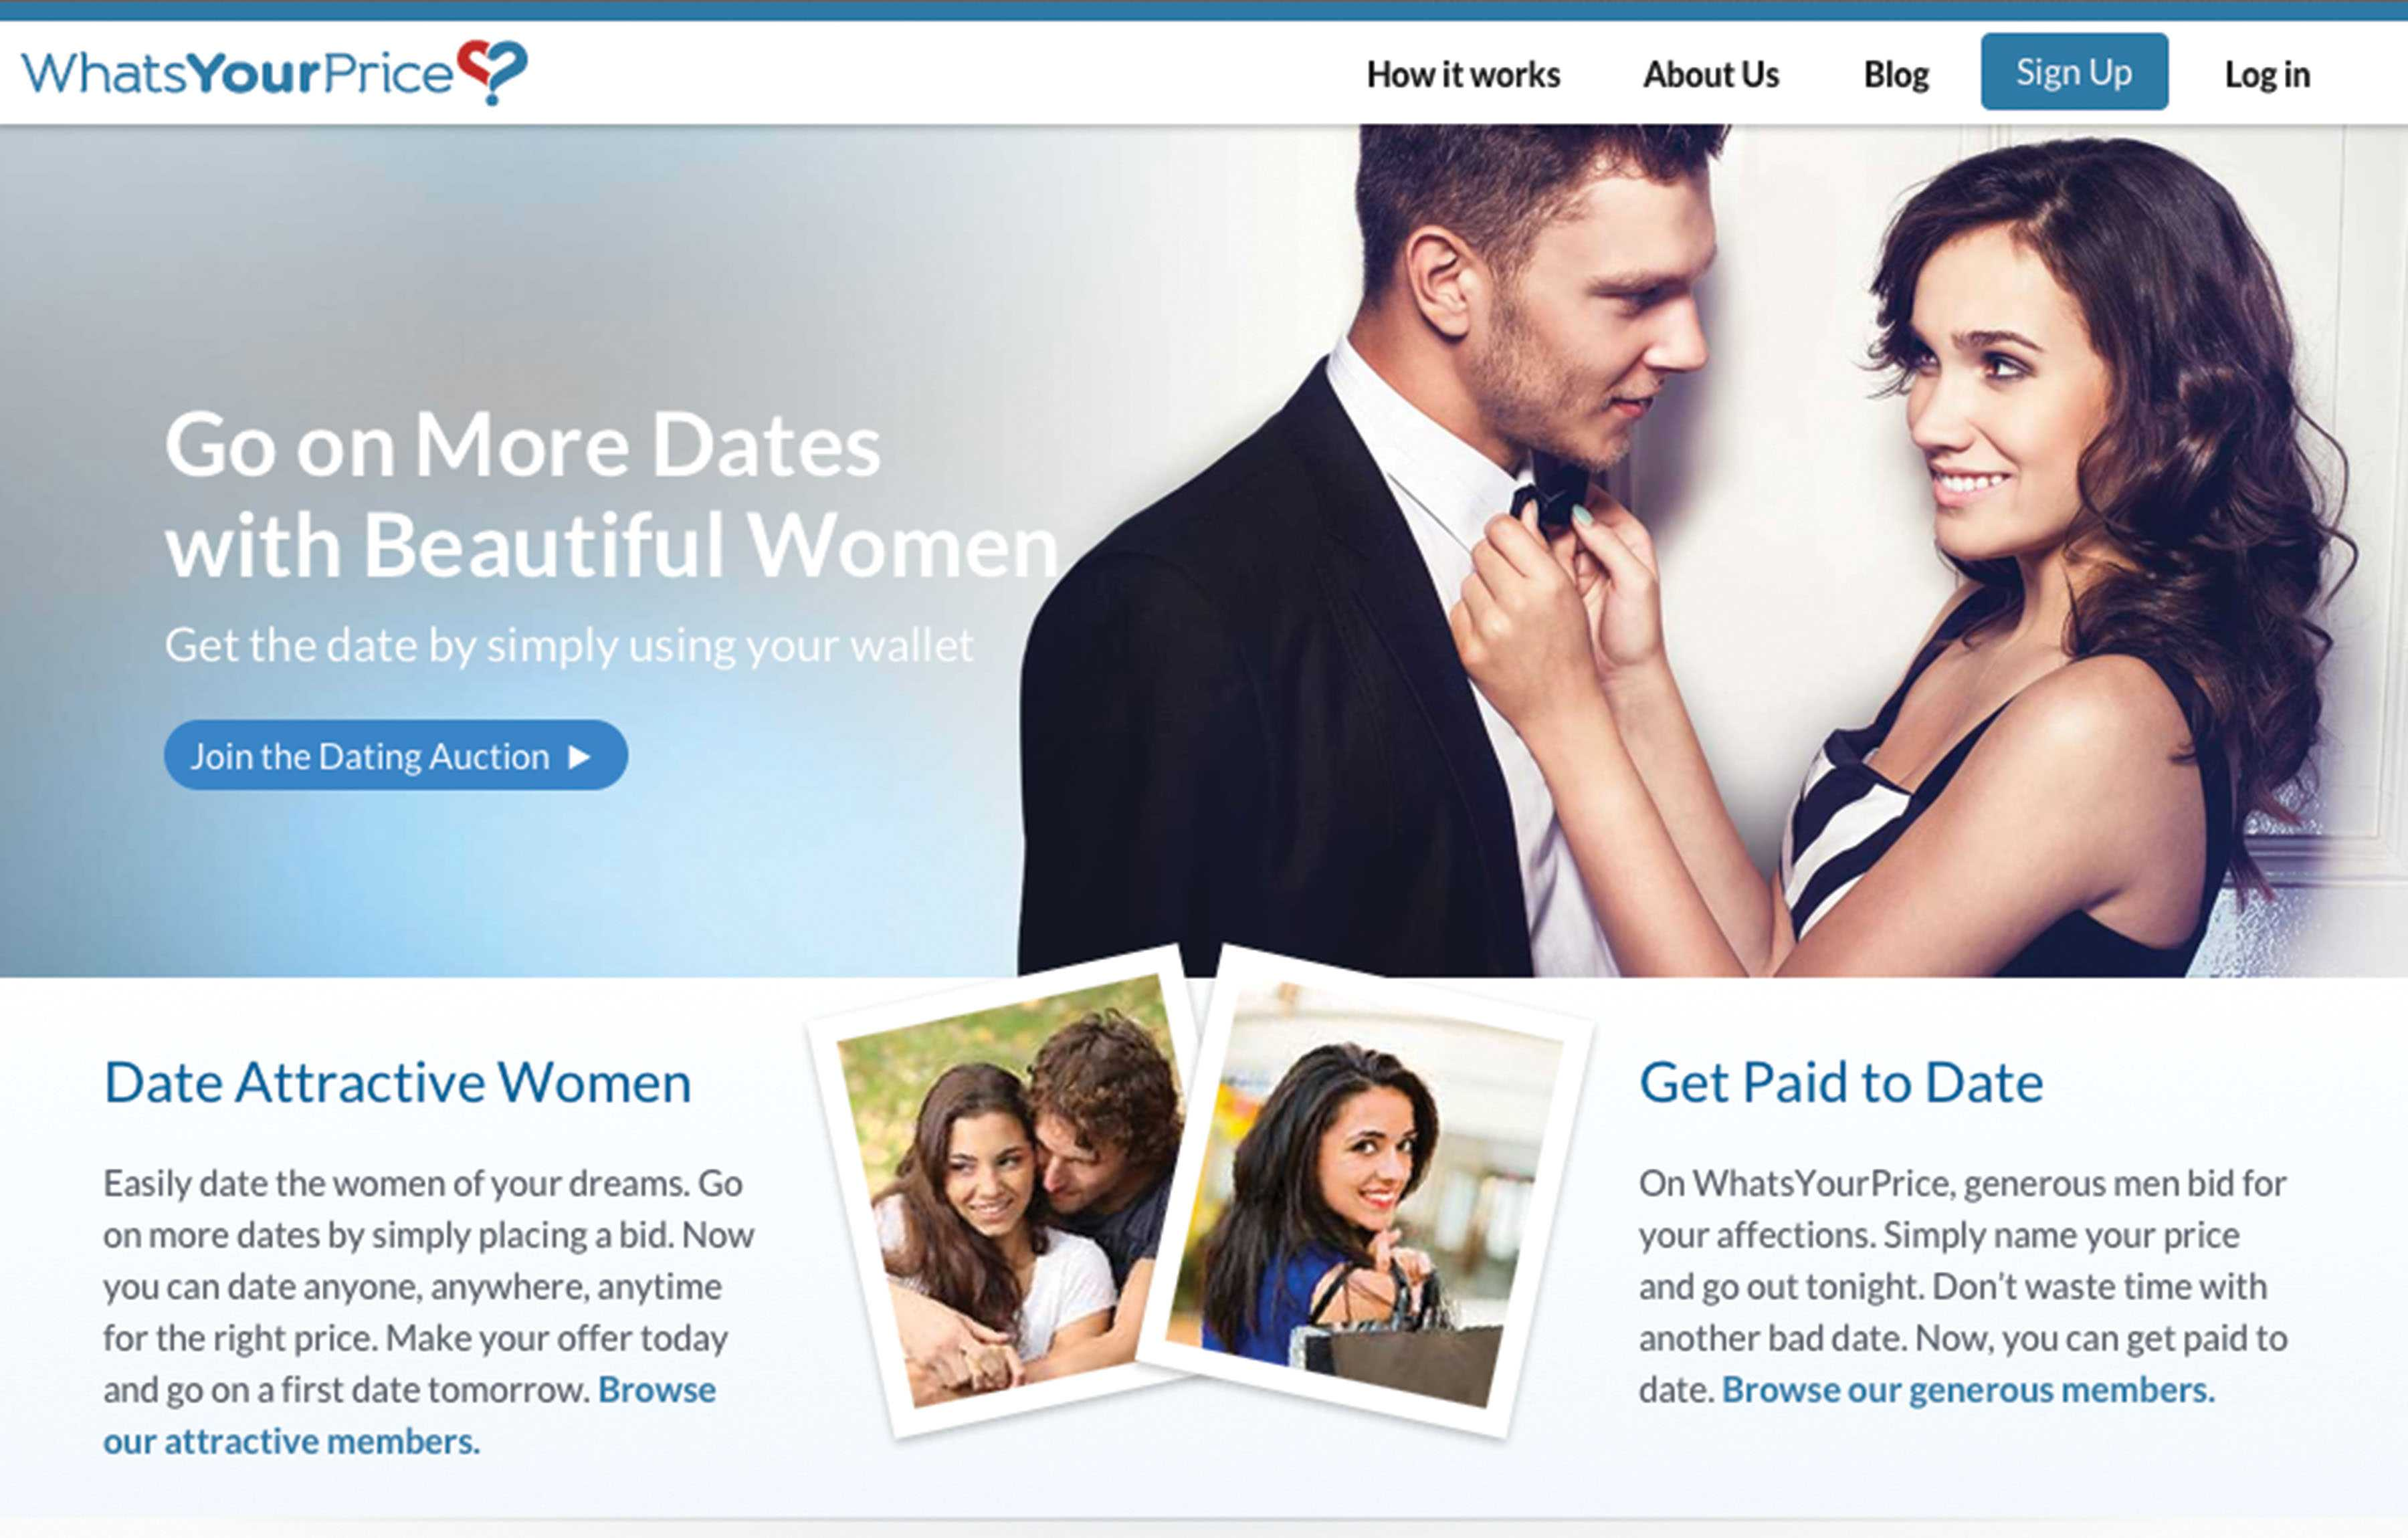 whats your price dating login